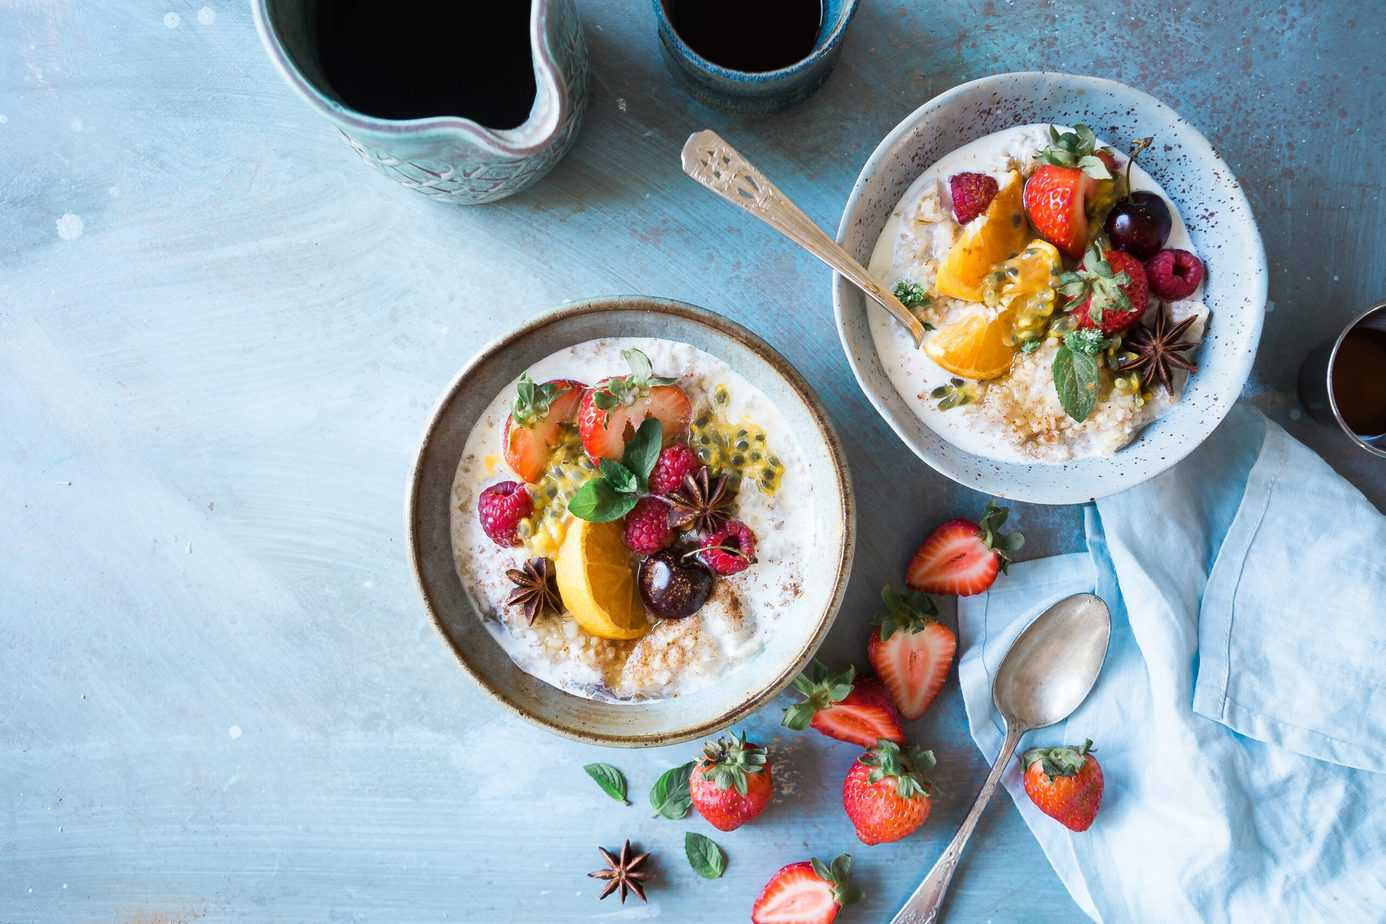 two big bowls of steel cut oats topped with berries, sliced oranges and grapefruit, grapes and soaking in milk